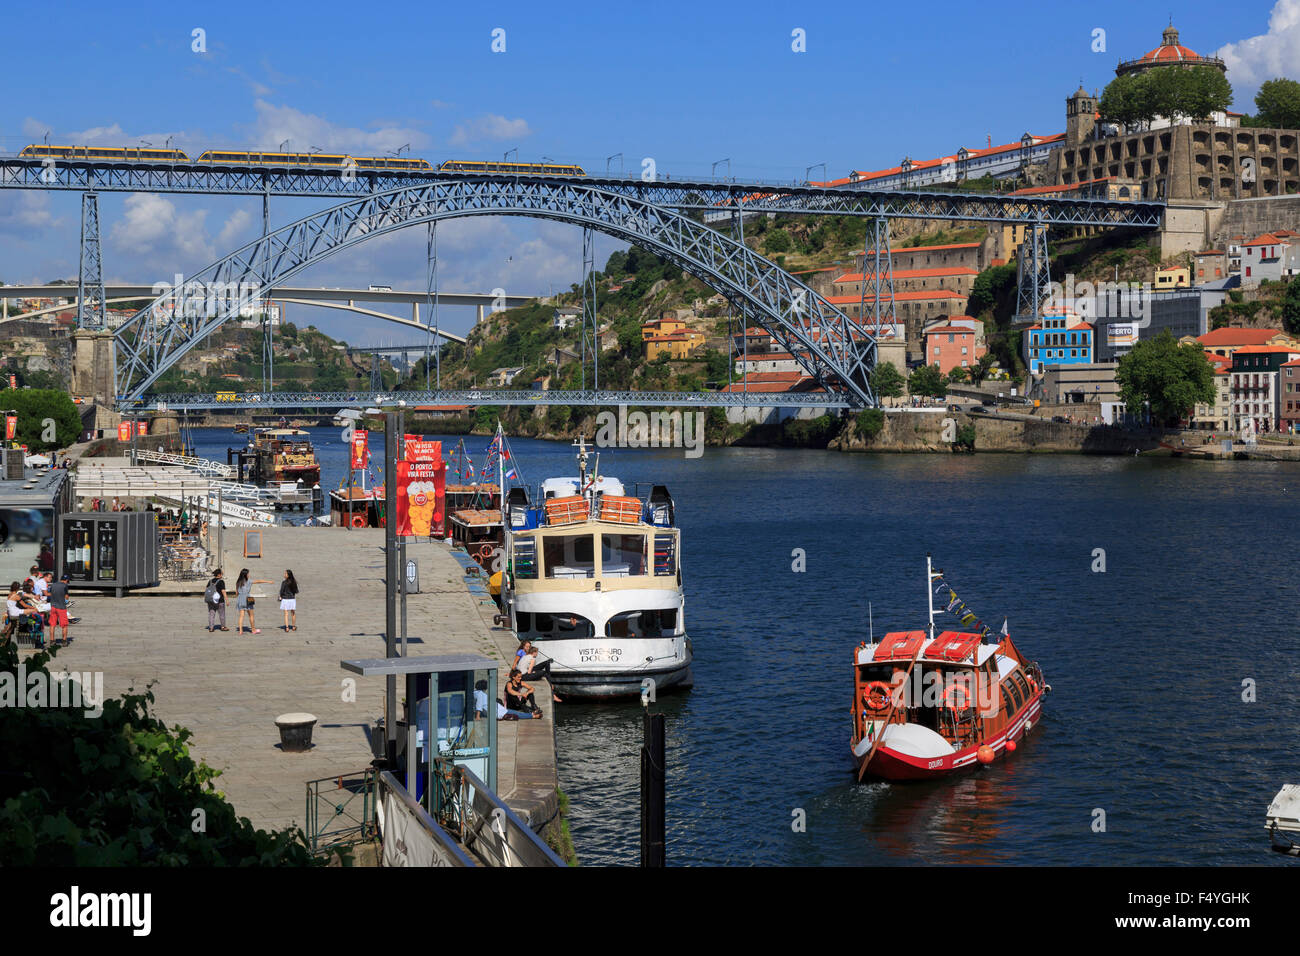 Cais de Ribeira River Douro and a light rail train crossng the Ponte Luis 1 bridge a World Heritage Site by UNESCO - Stock Image